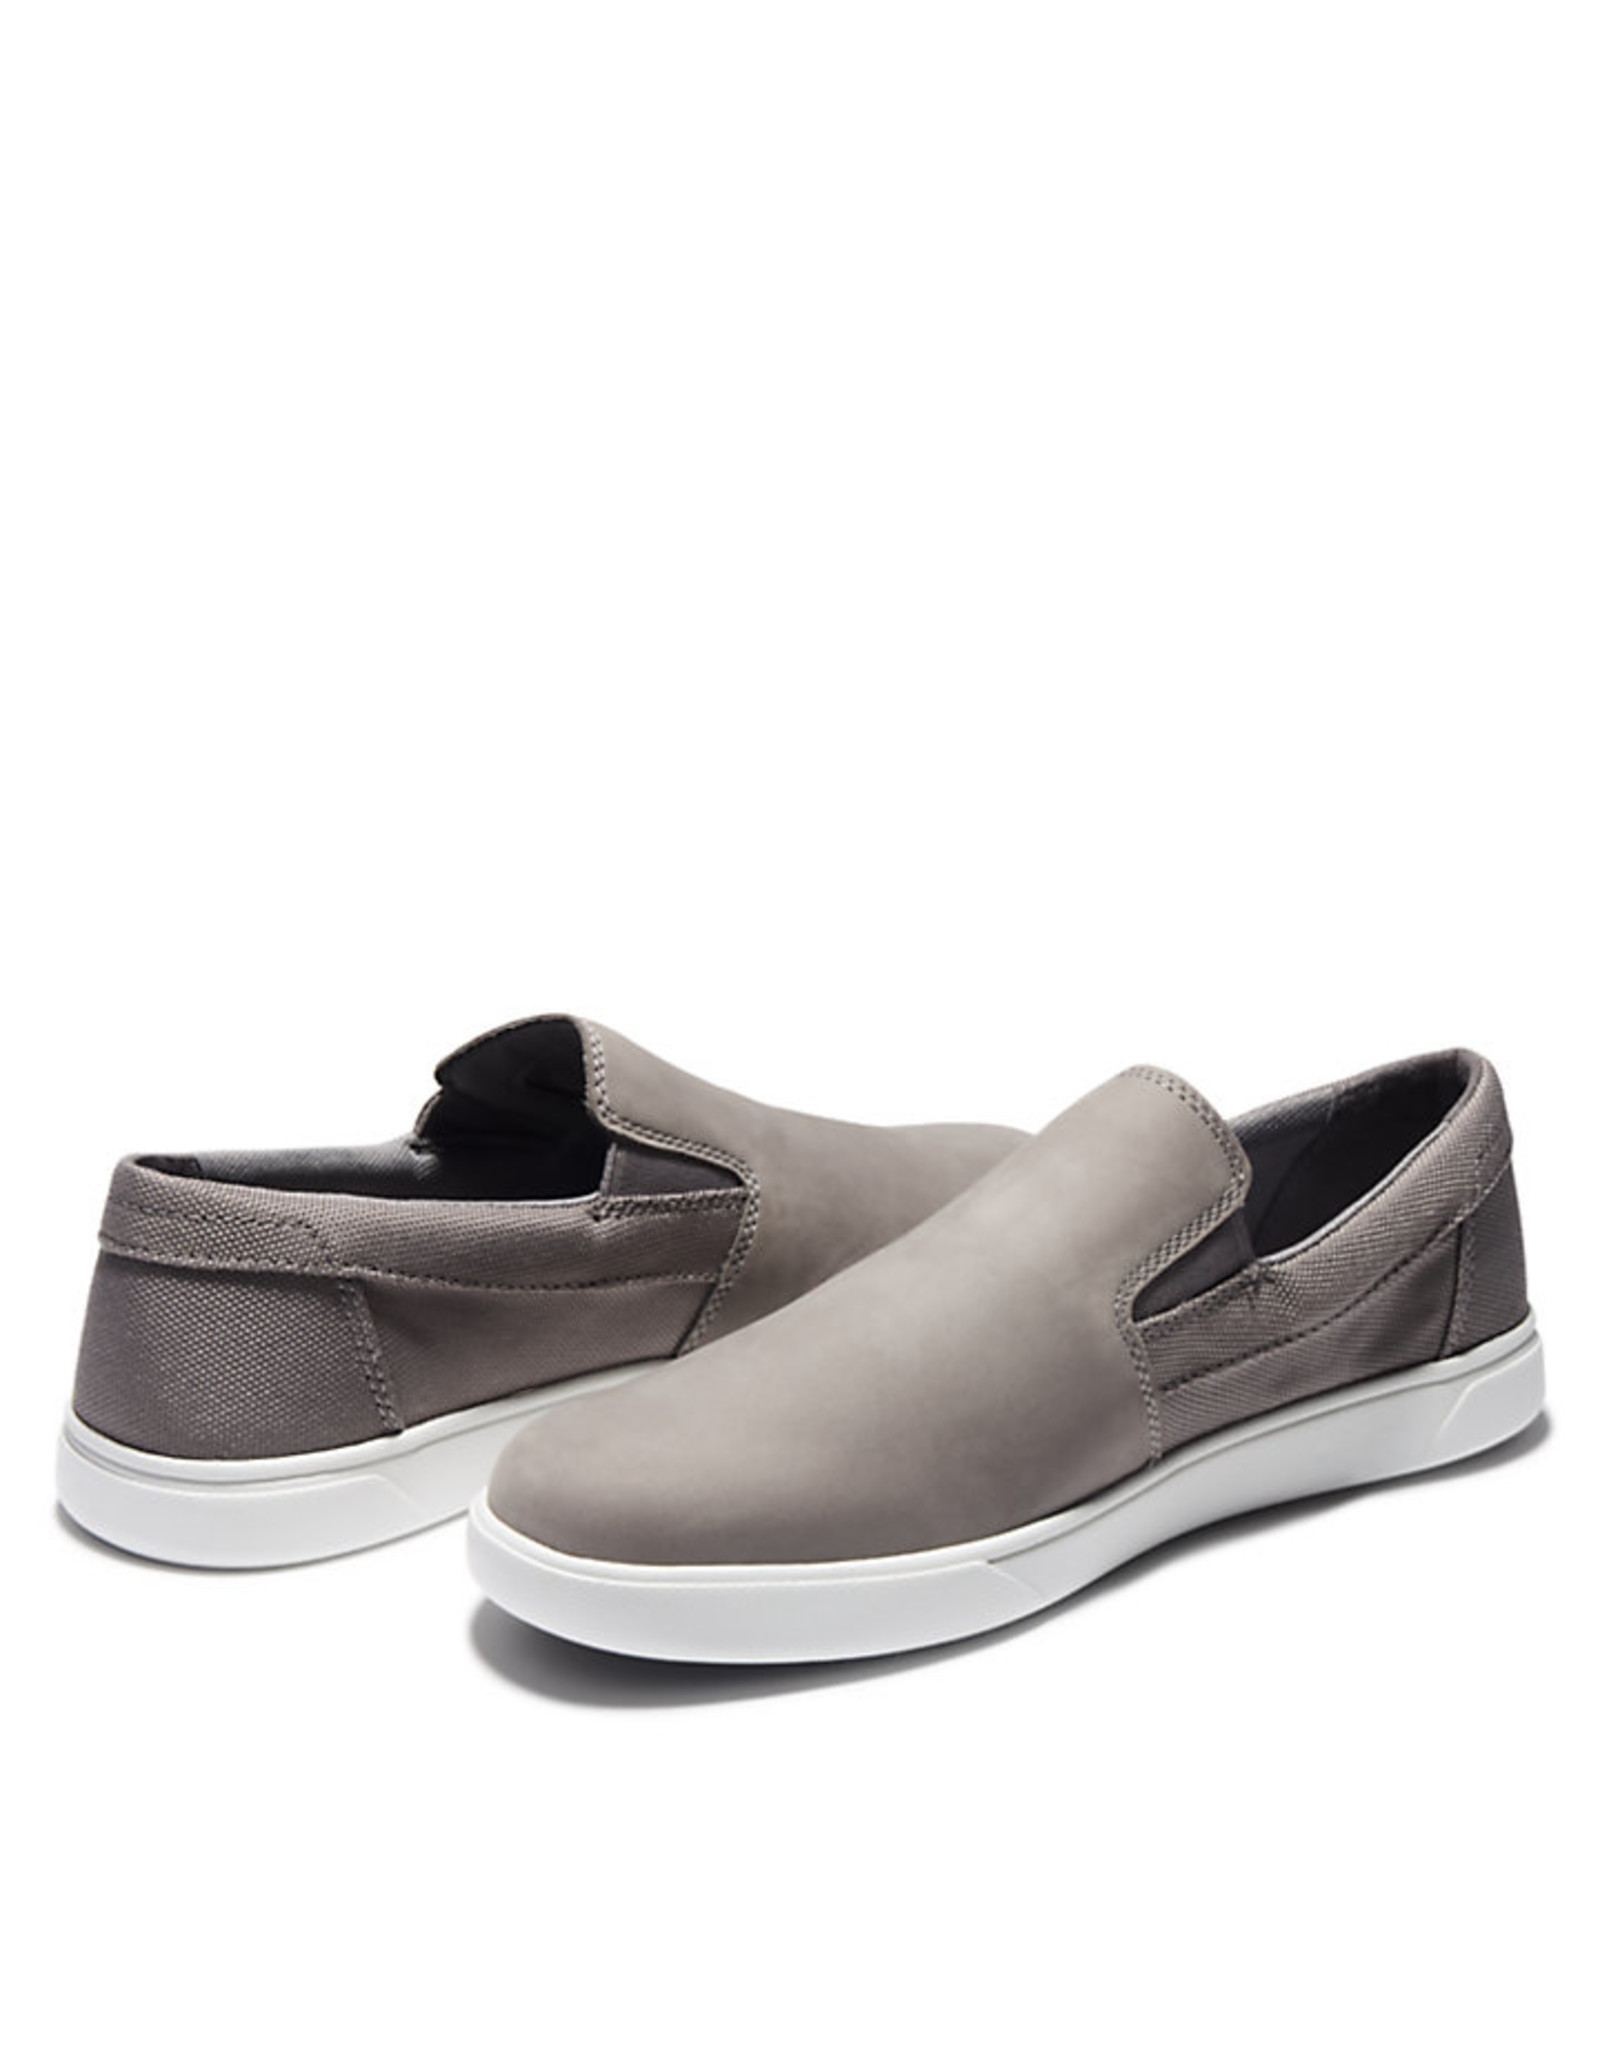 Timberland Men's Groveton Slip On - ps20